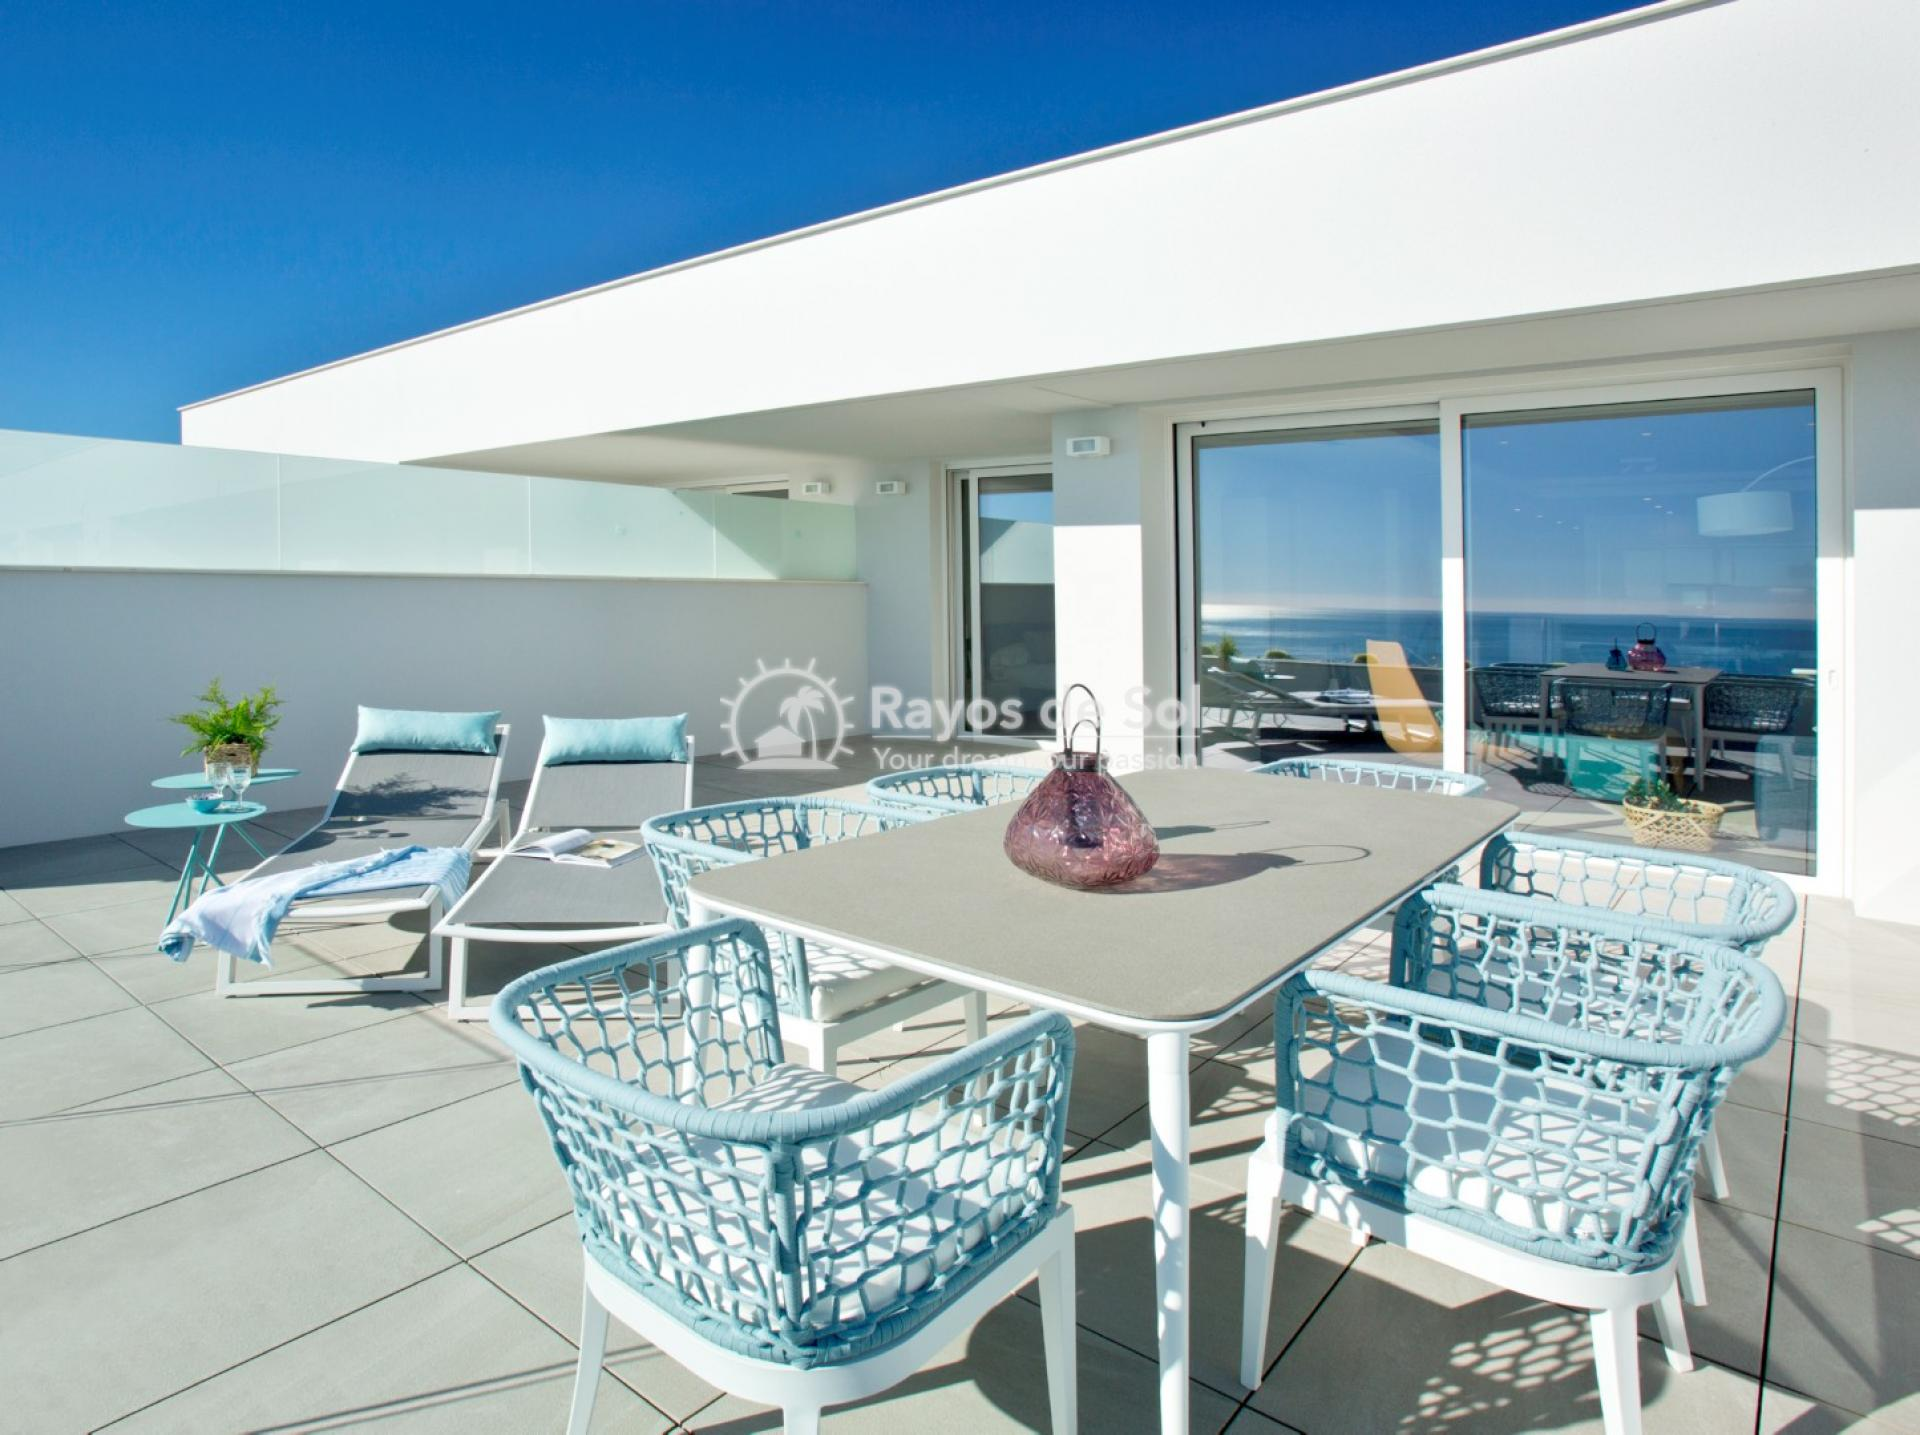 Exclusive apartement in Cumbre del Sol, Benitachell, Costa Blanca (BEVABI3-2) - 10